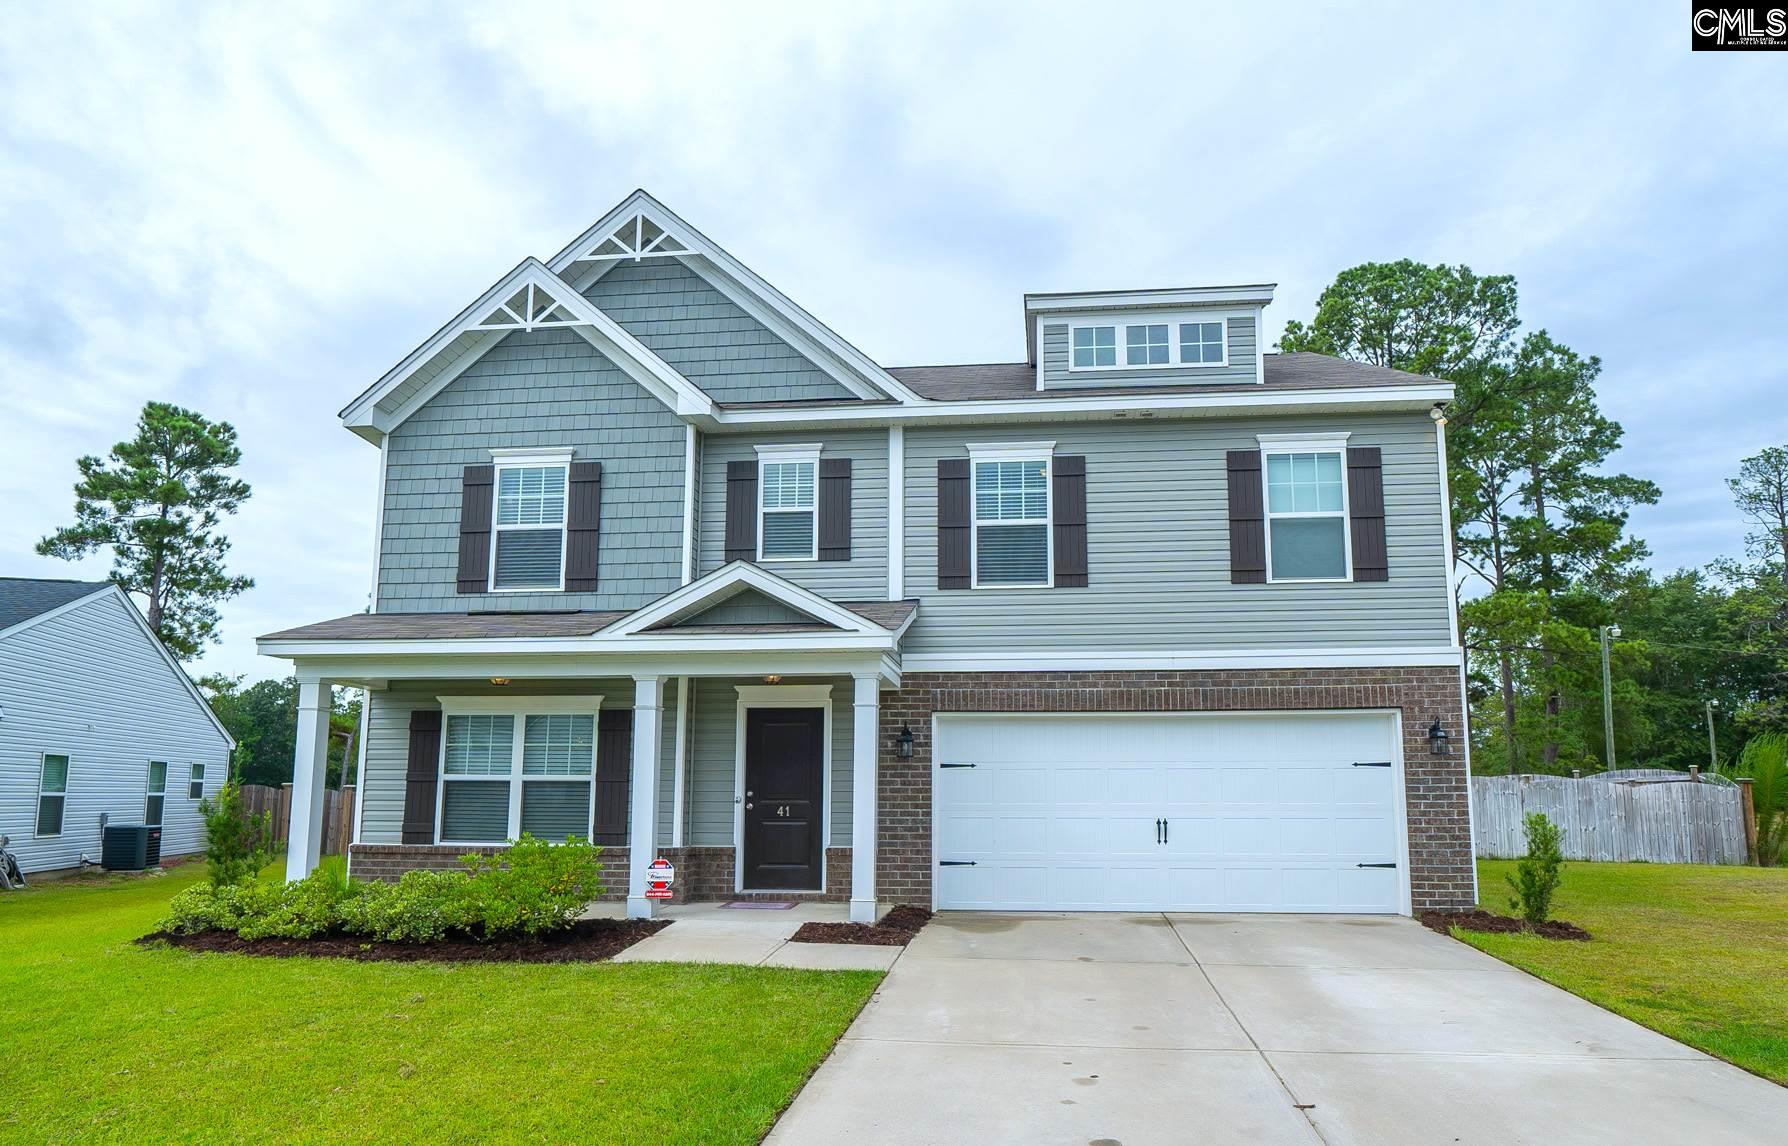 41 Red Pine Blythewood, SC 29016